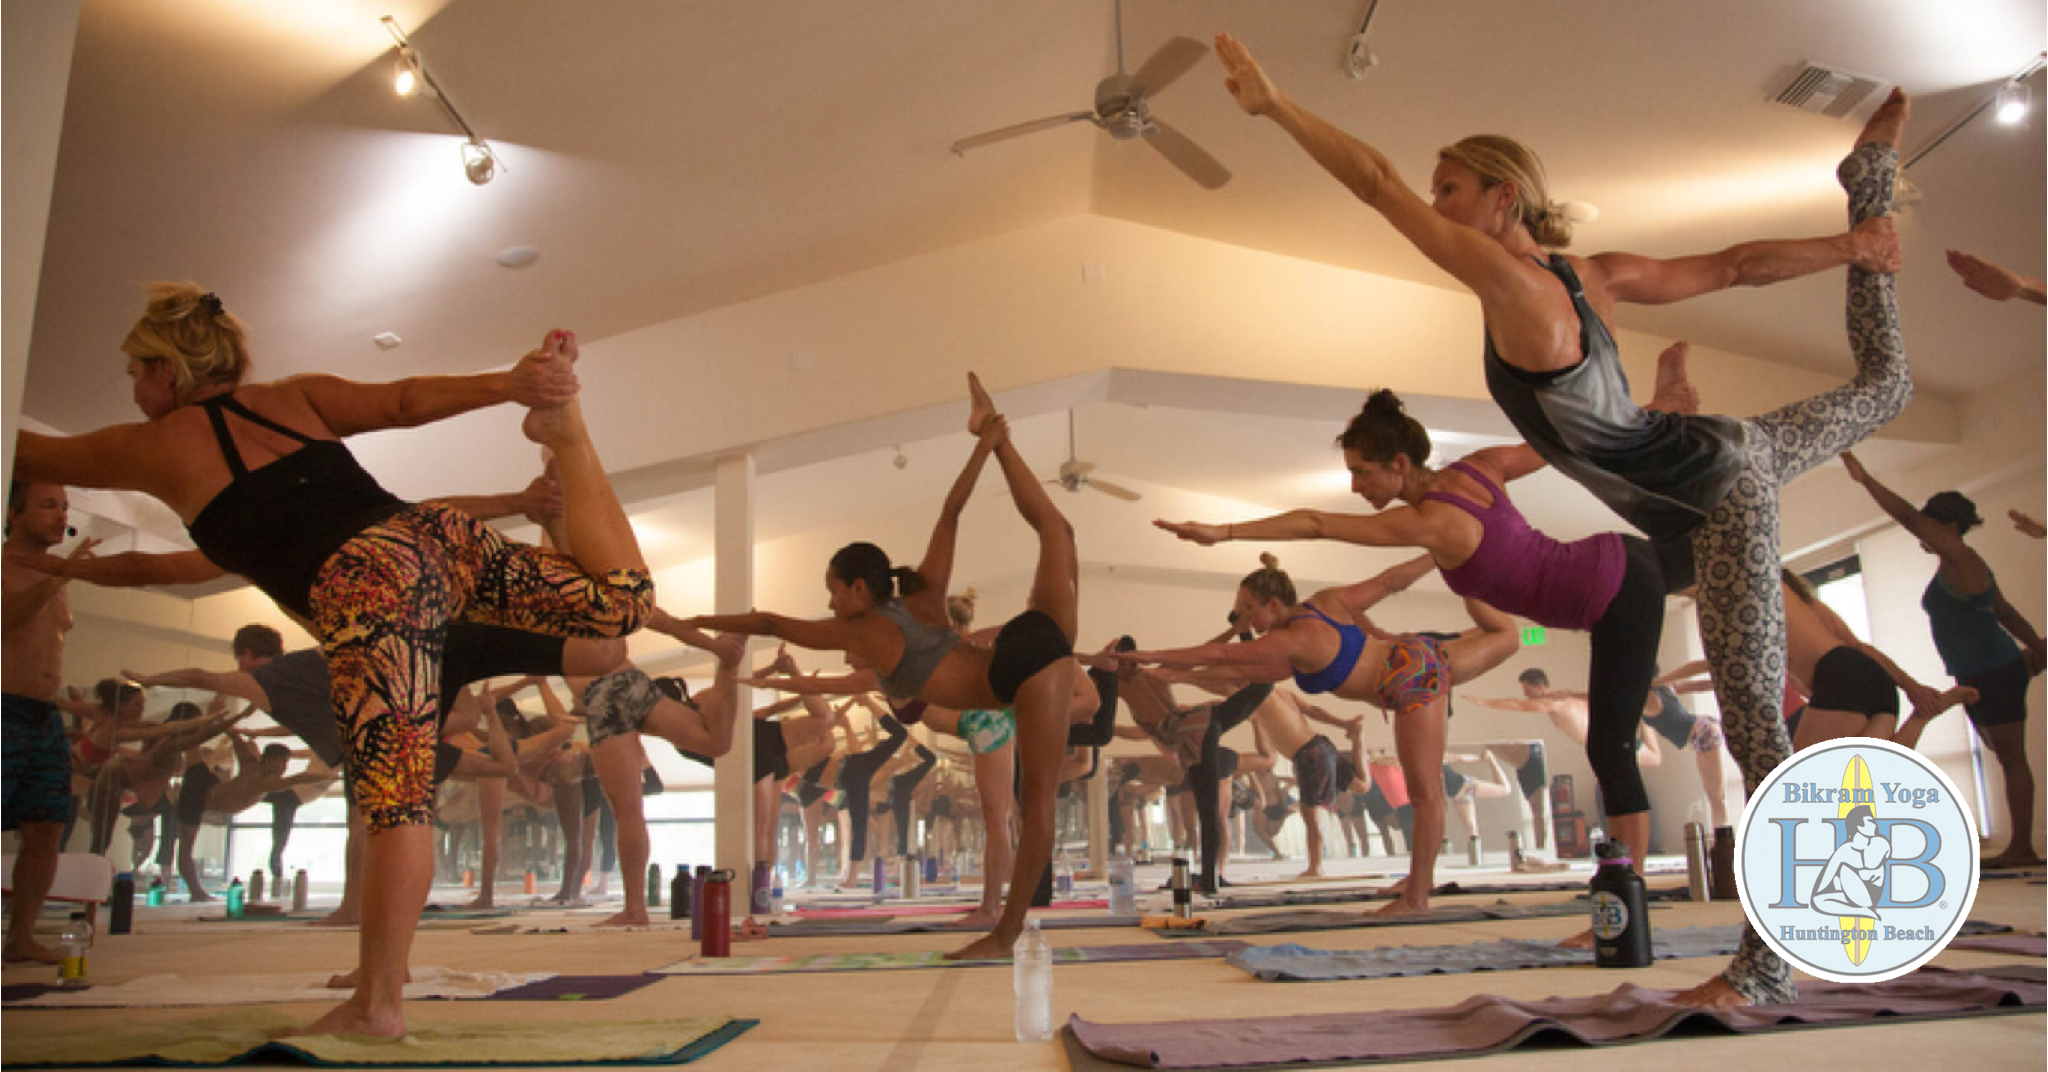 Original Hot Yoga Hb New Student Yoga Information